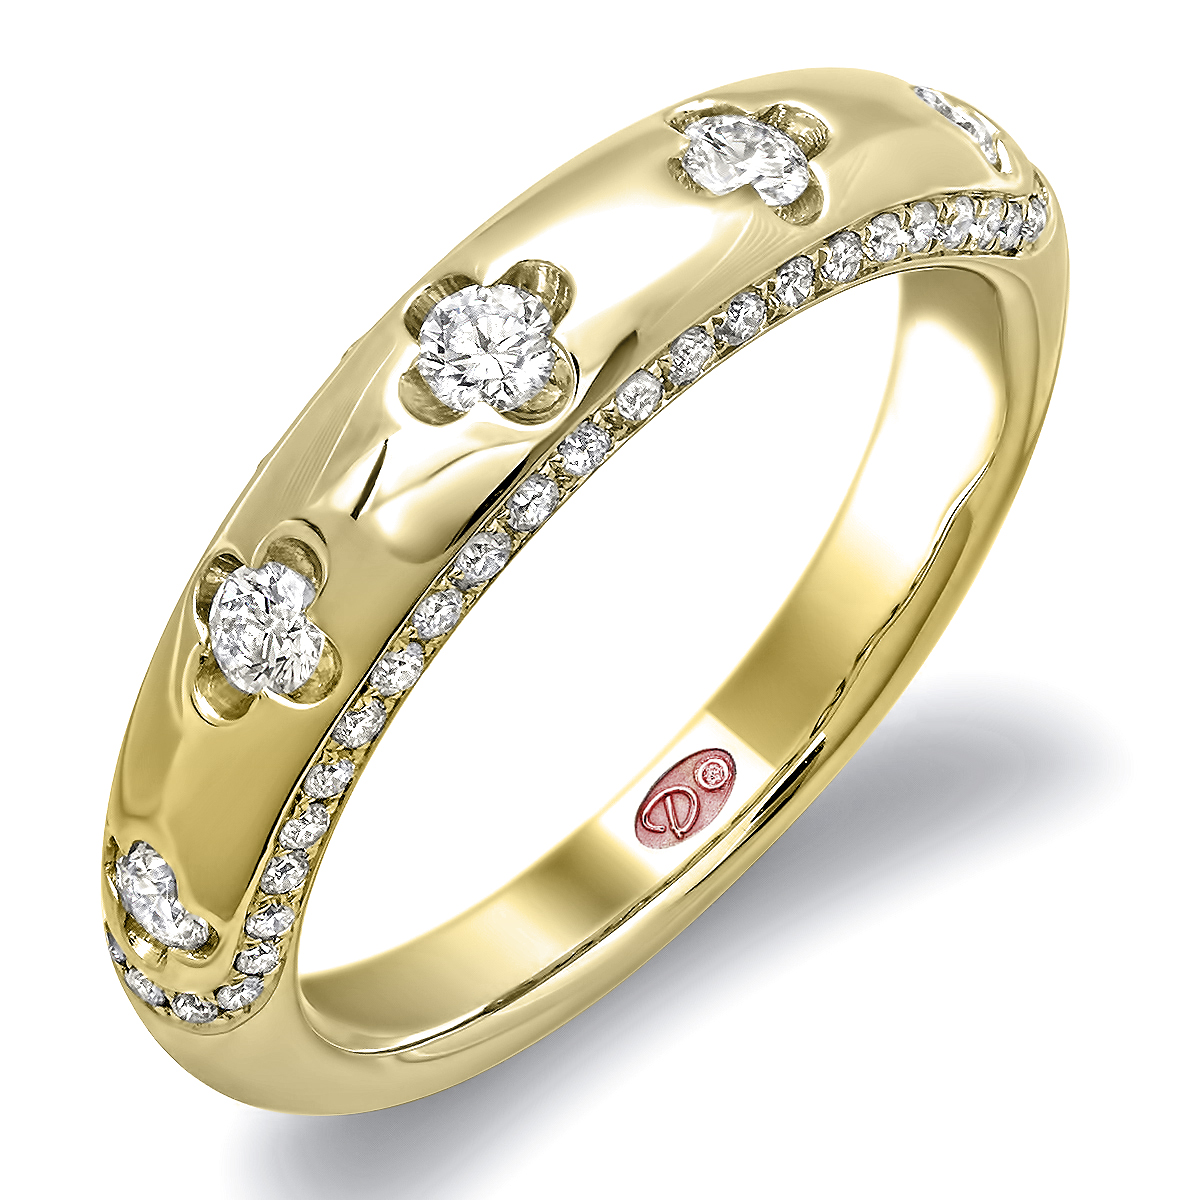 Designer Engagement Jewelry And Rings